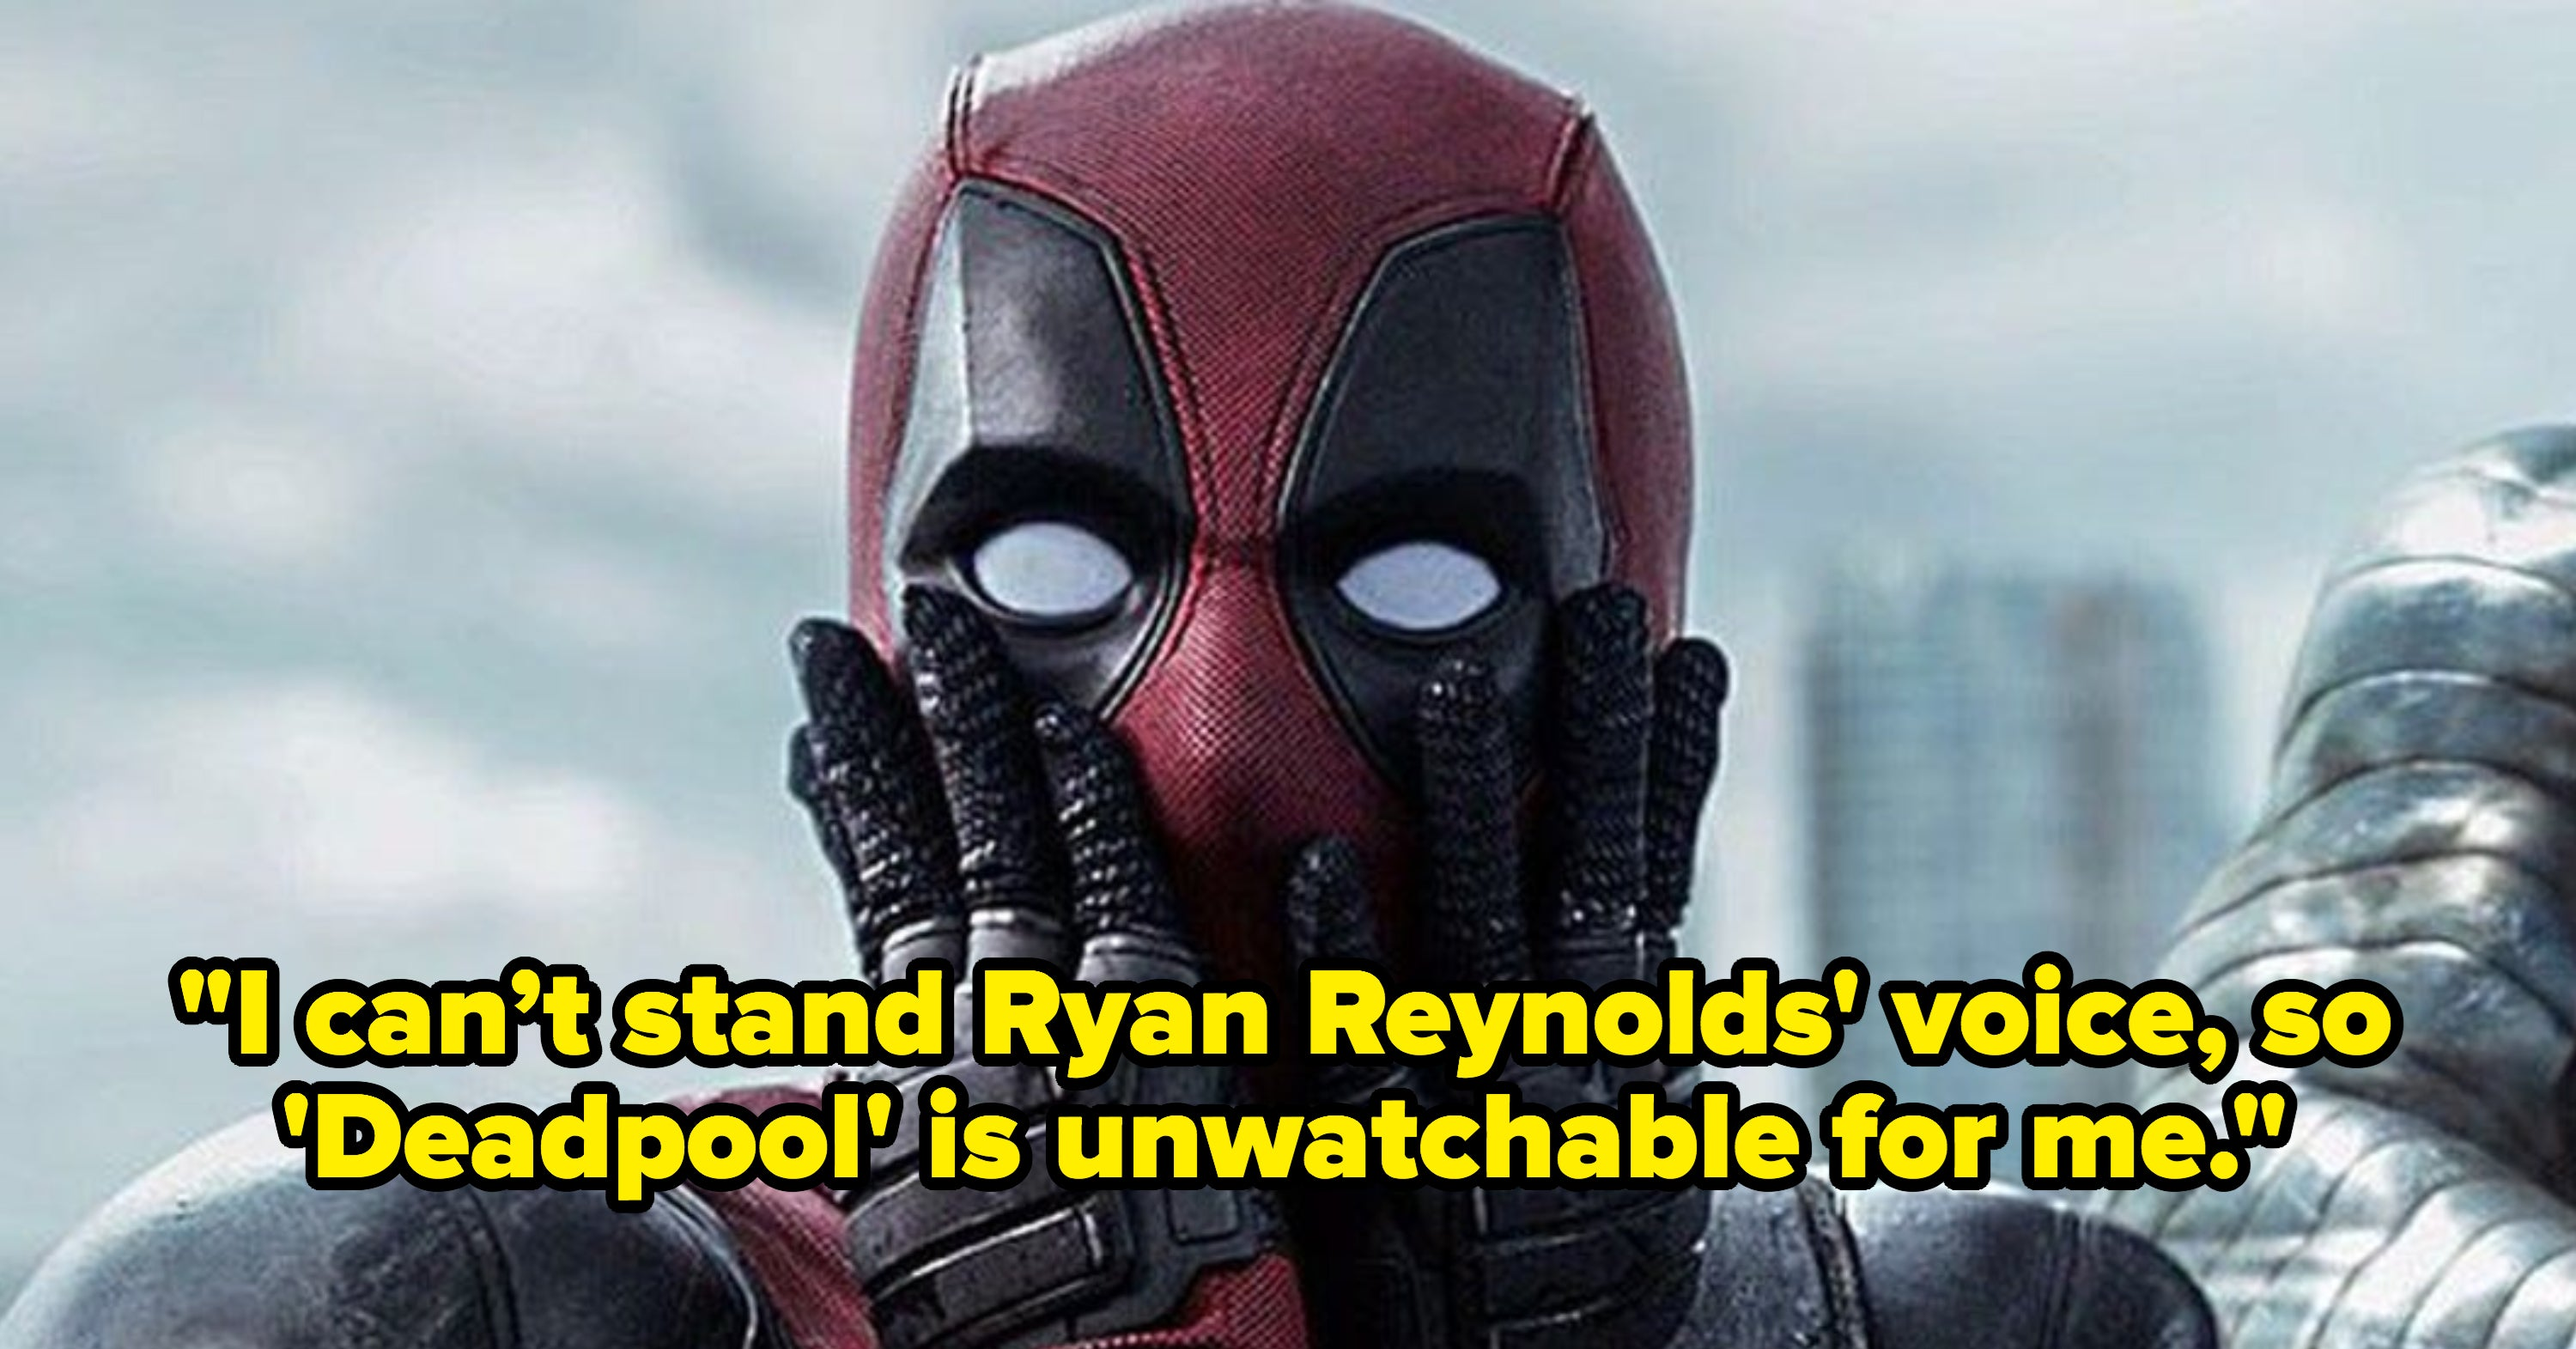 People Shared Their Most Aggressively Unpopular Movie Opinions And, Whew Buddy, They're A Lot